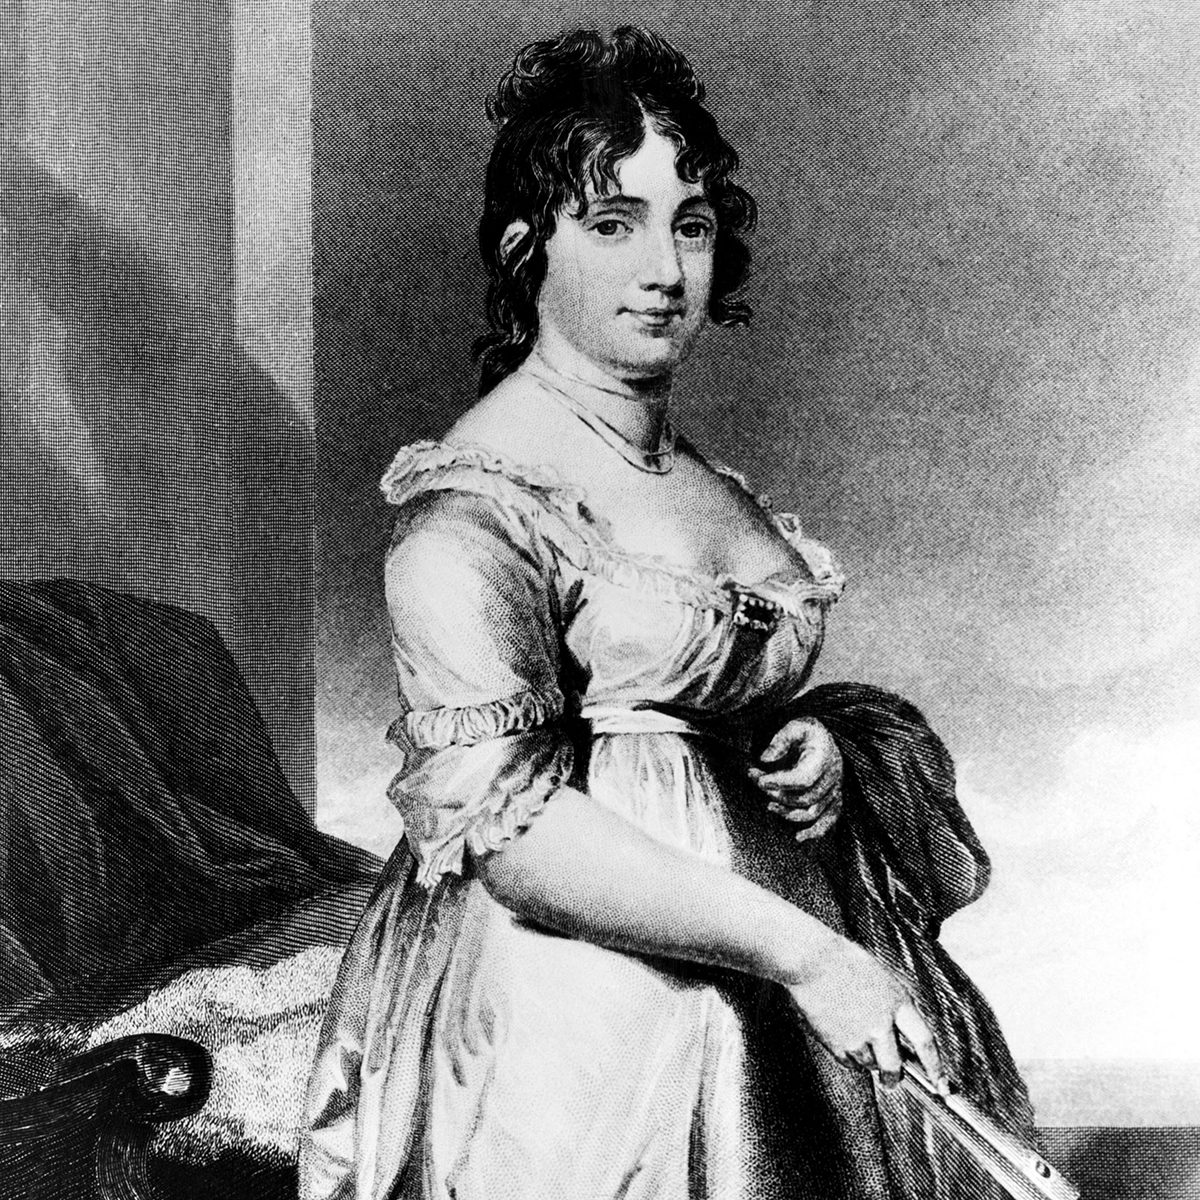 Dolley Madison (1768-1849), First Lady 1809-1817, c. 1818.